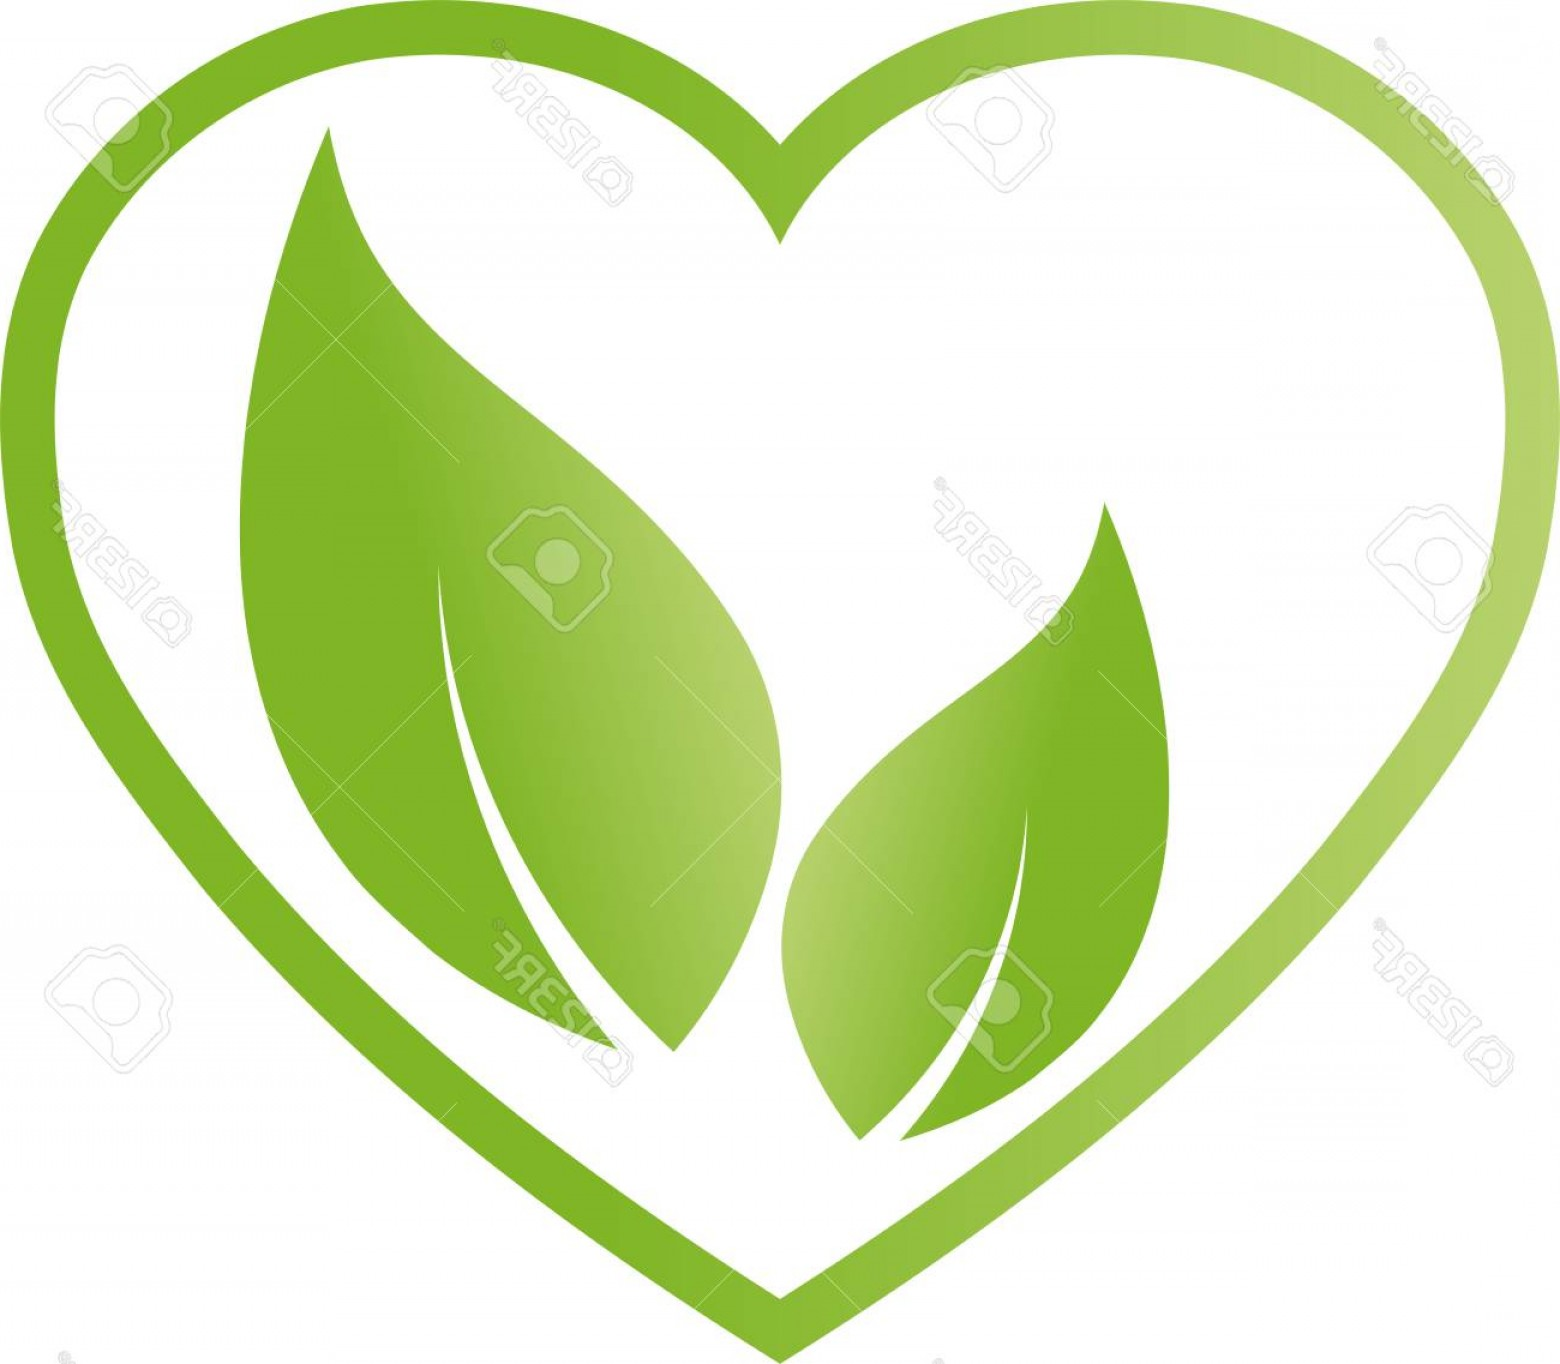 Vegan Heart Vectors: Photostock Vector Heart And Leaves Nature Vegan Illustration